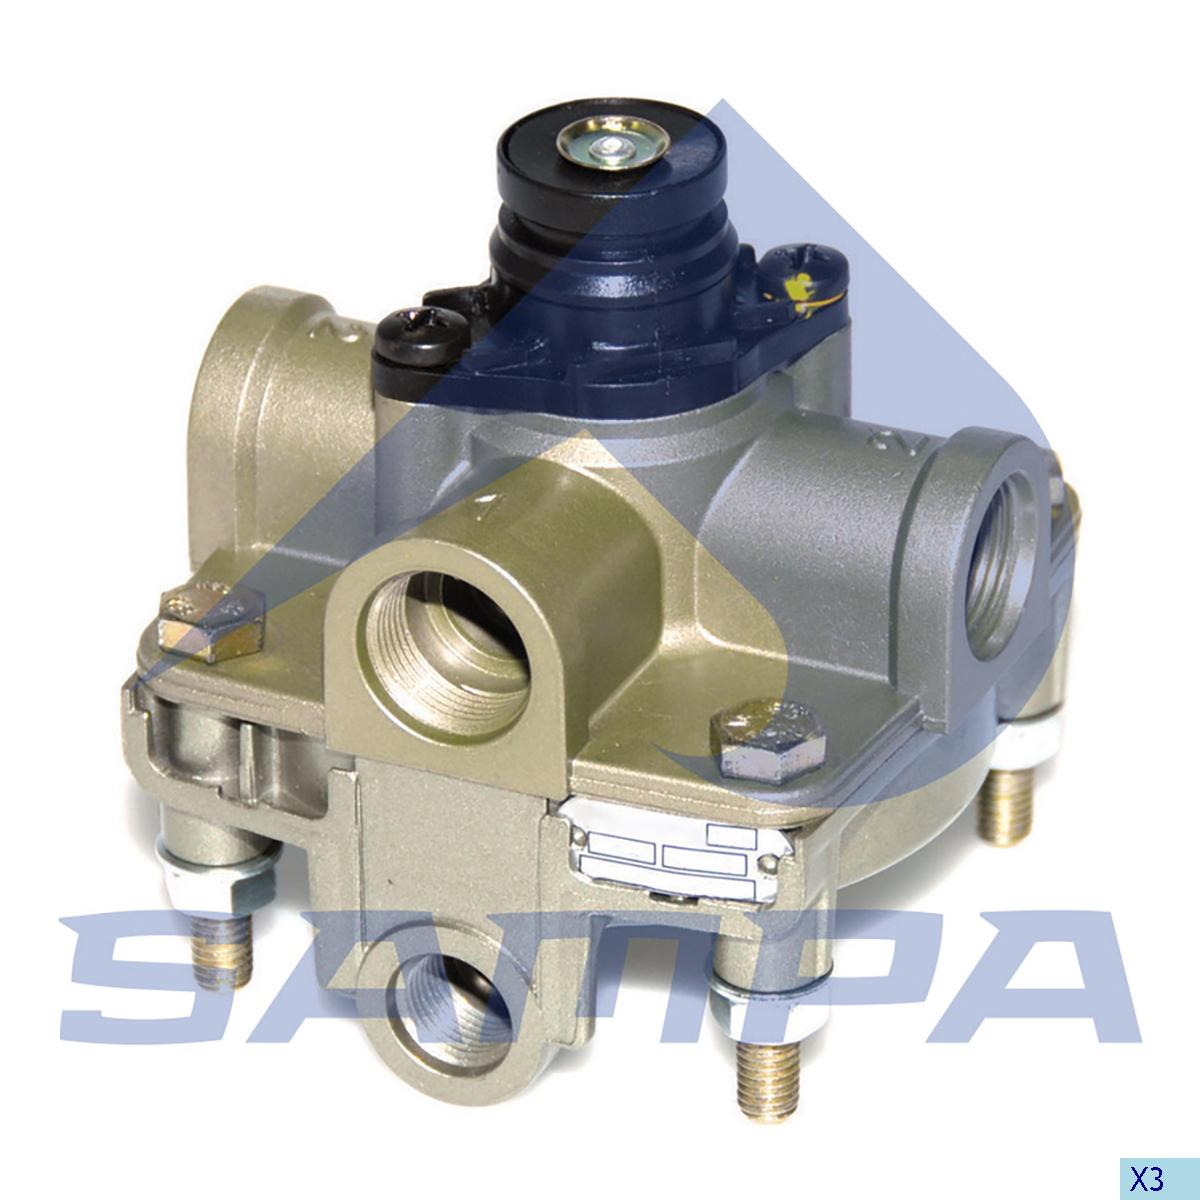 Relay Valve, Man, Compressed Air System